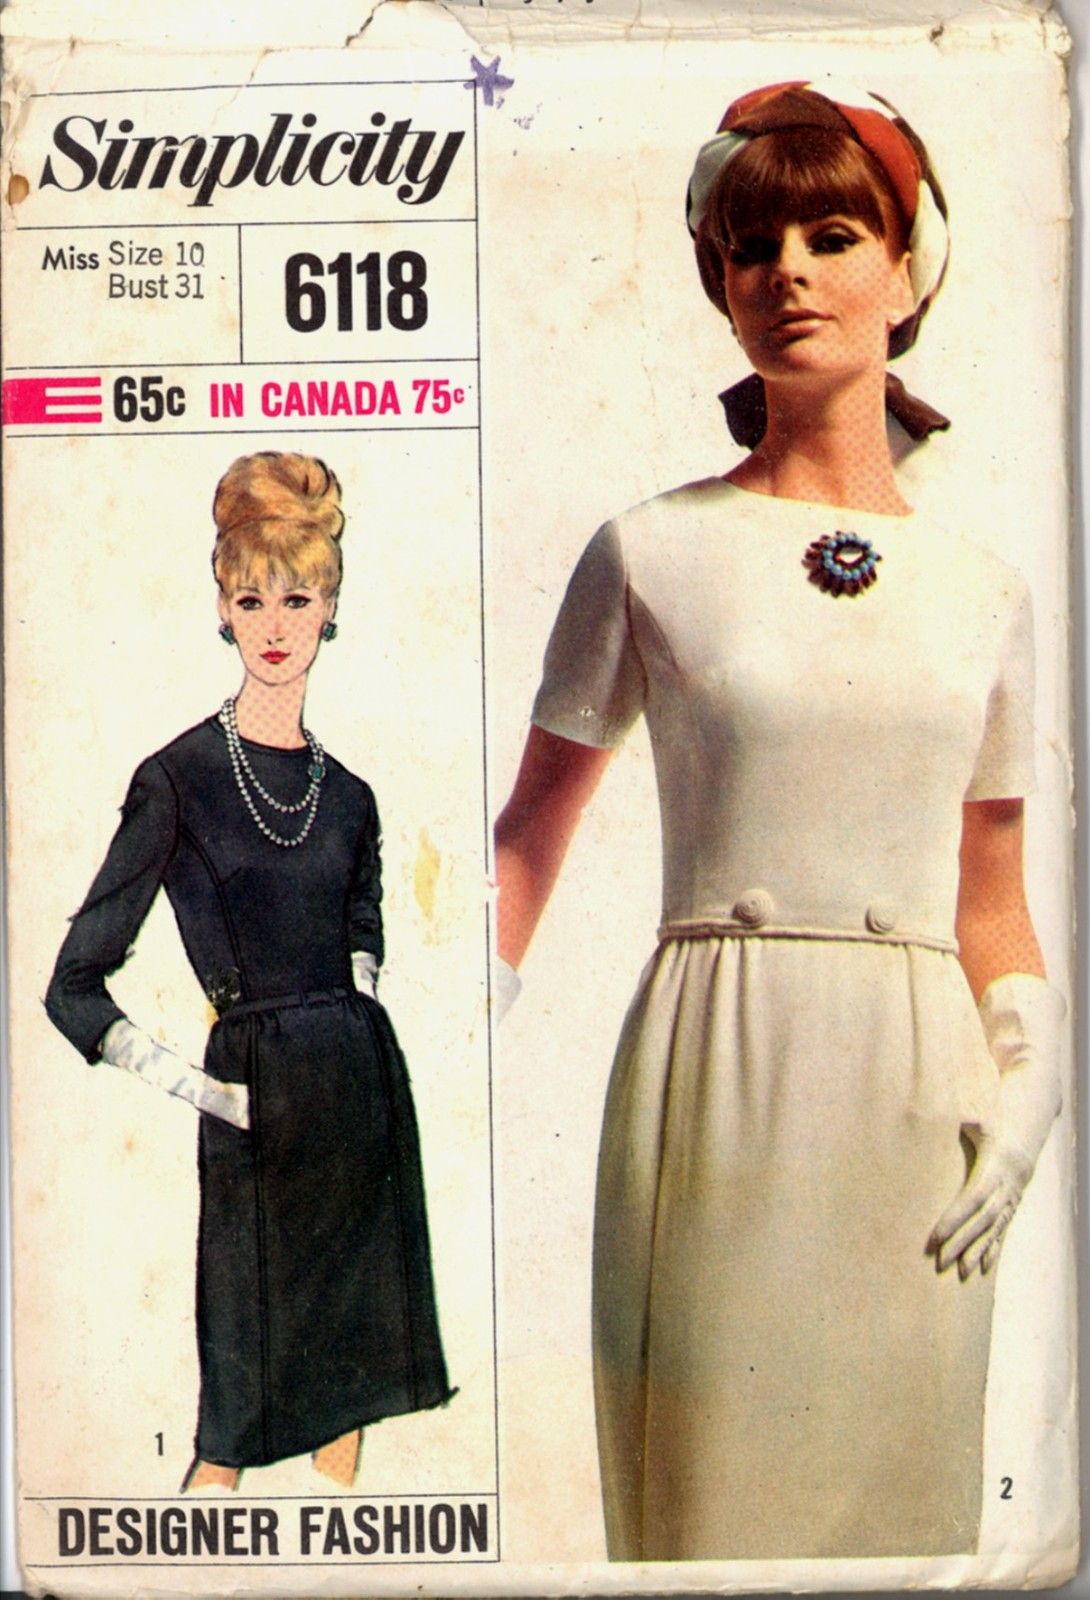 Primary image for 1960s Size 10 Bust 31 Designer Fashion Dress Simplicity 6119 Vintage Pattern